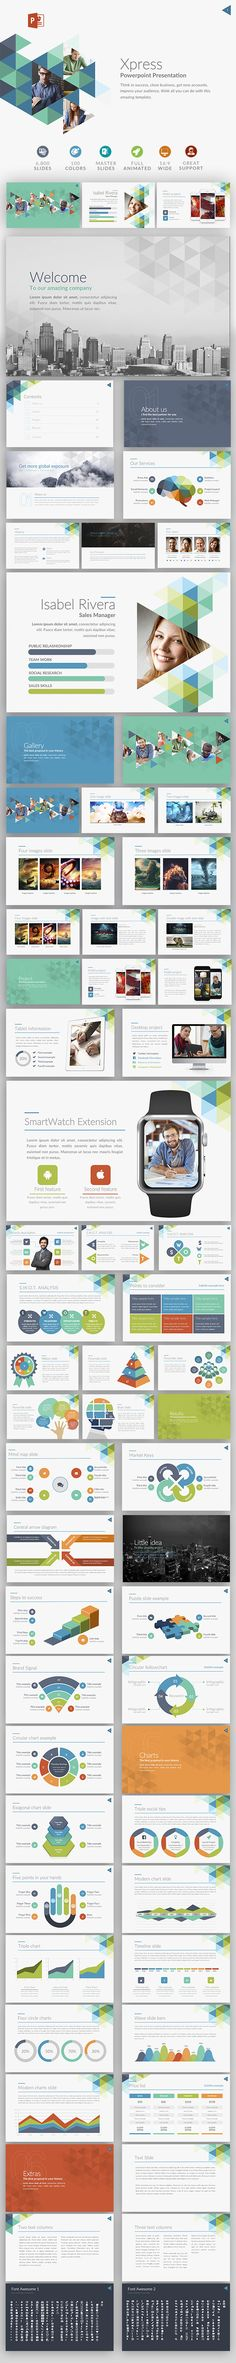 Xpress - Powerpoint Template. Download here: http://graphicriver.net/item/xpress-powerpoint-template/14629321?ref=ksioks